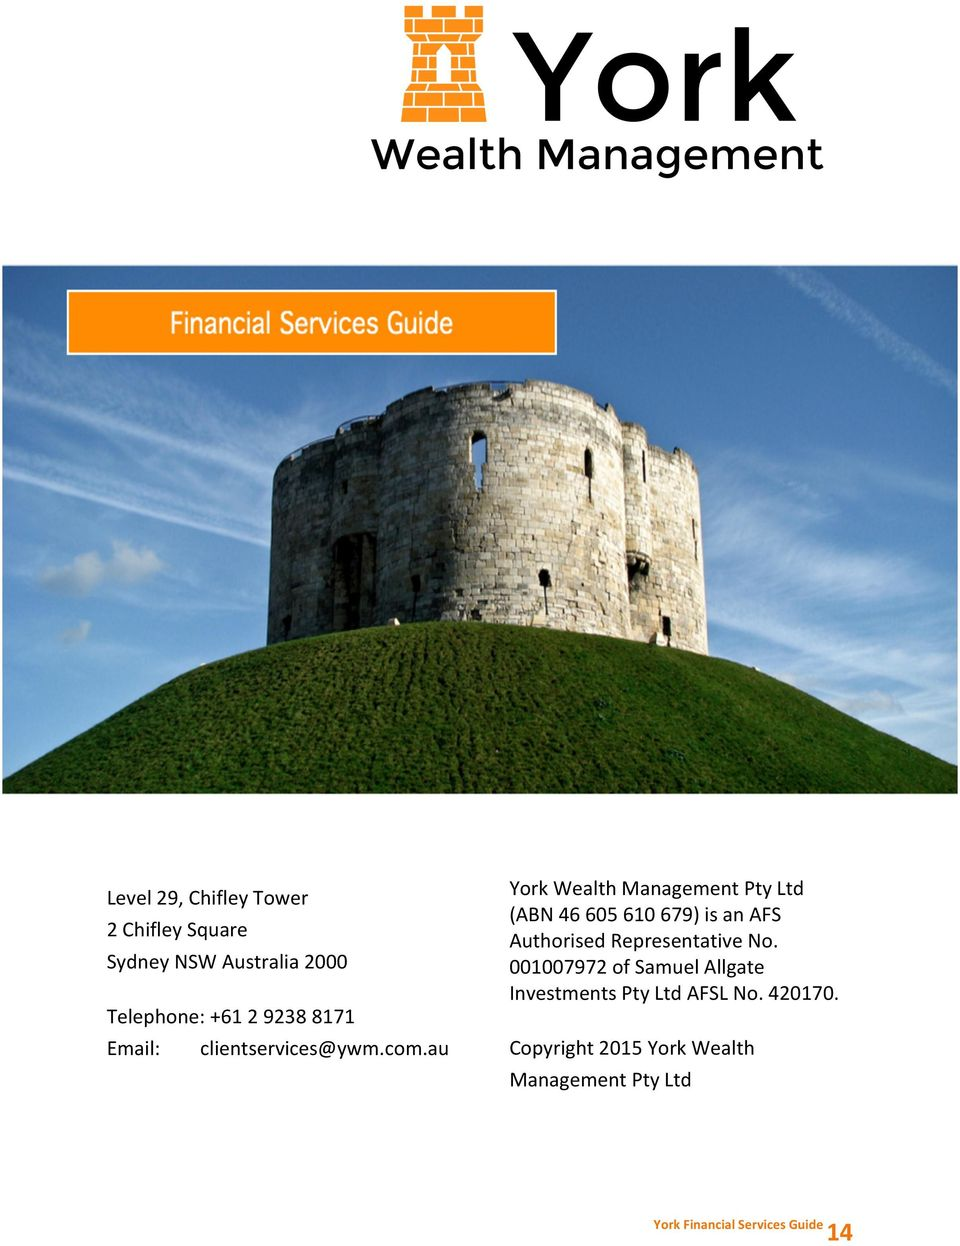 au York Wealth Management Pty Ltd (ABN 46 605 610 679) is an AFS Authorised